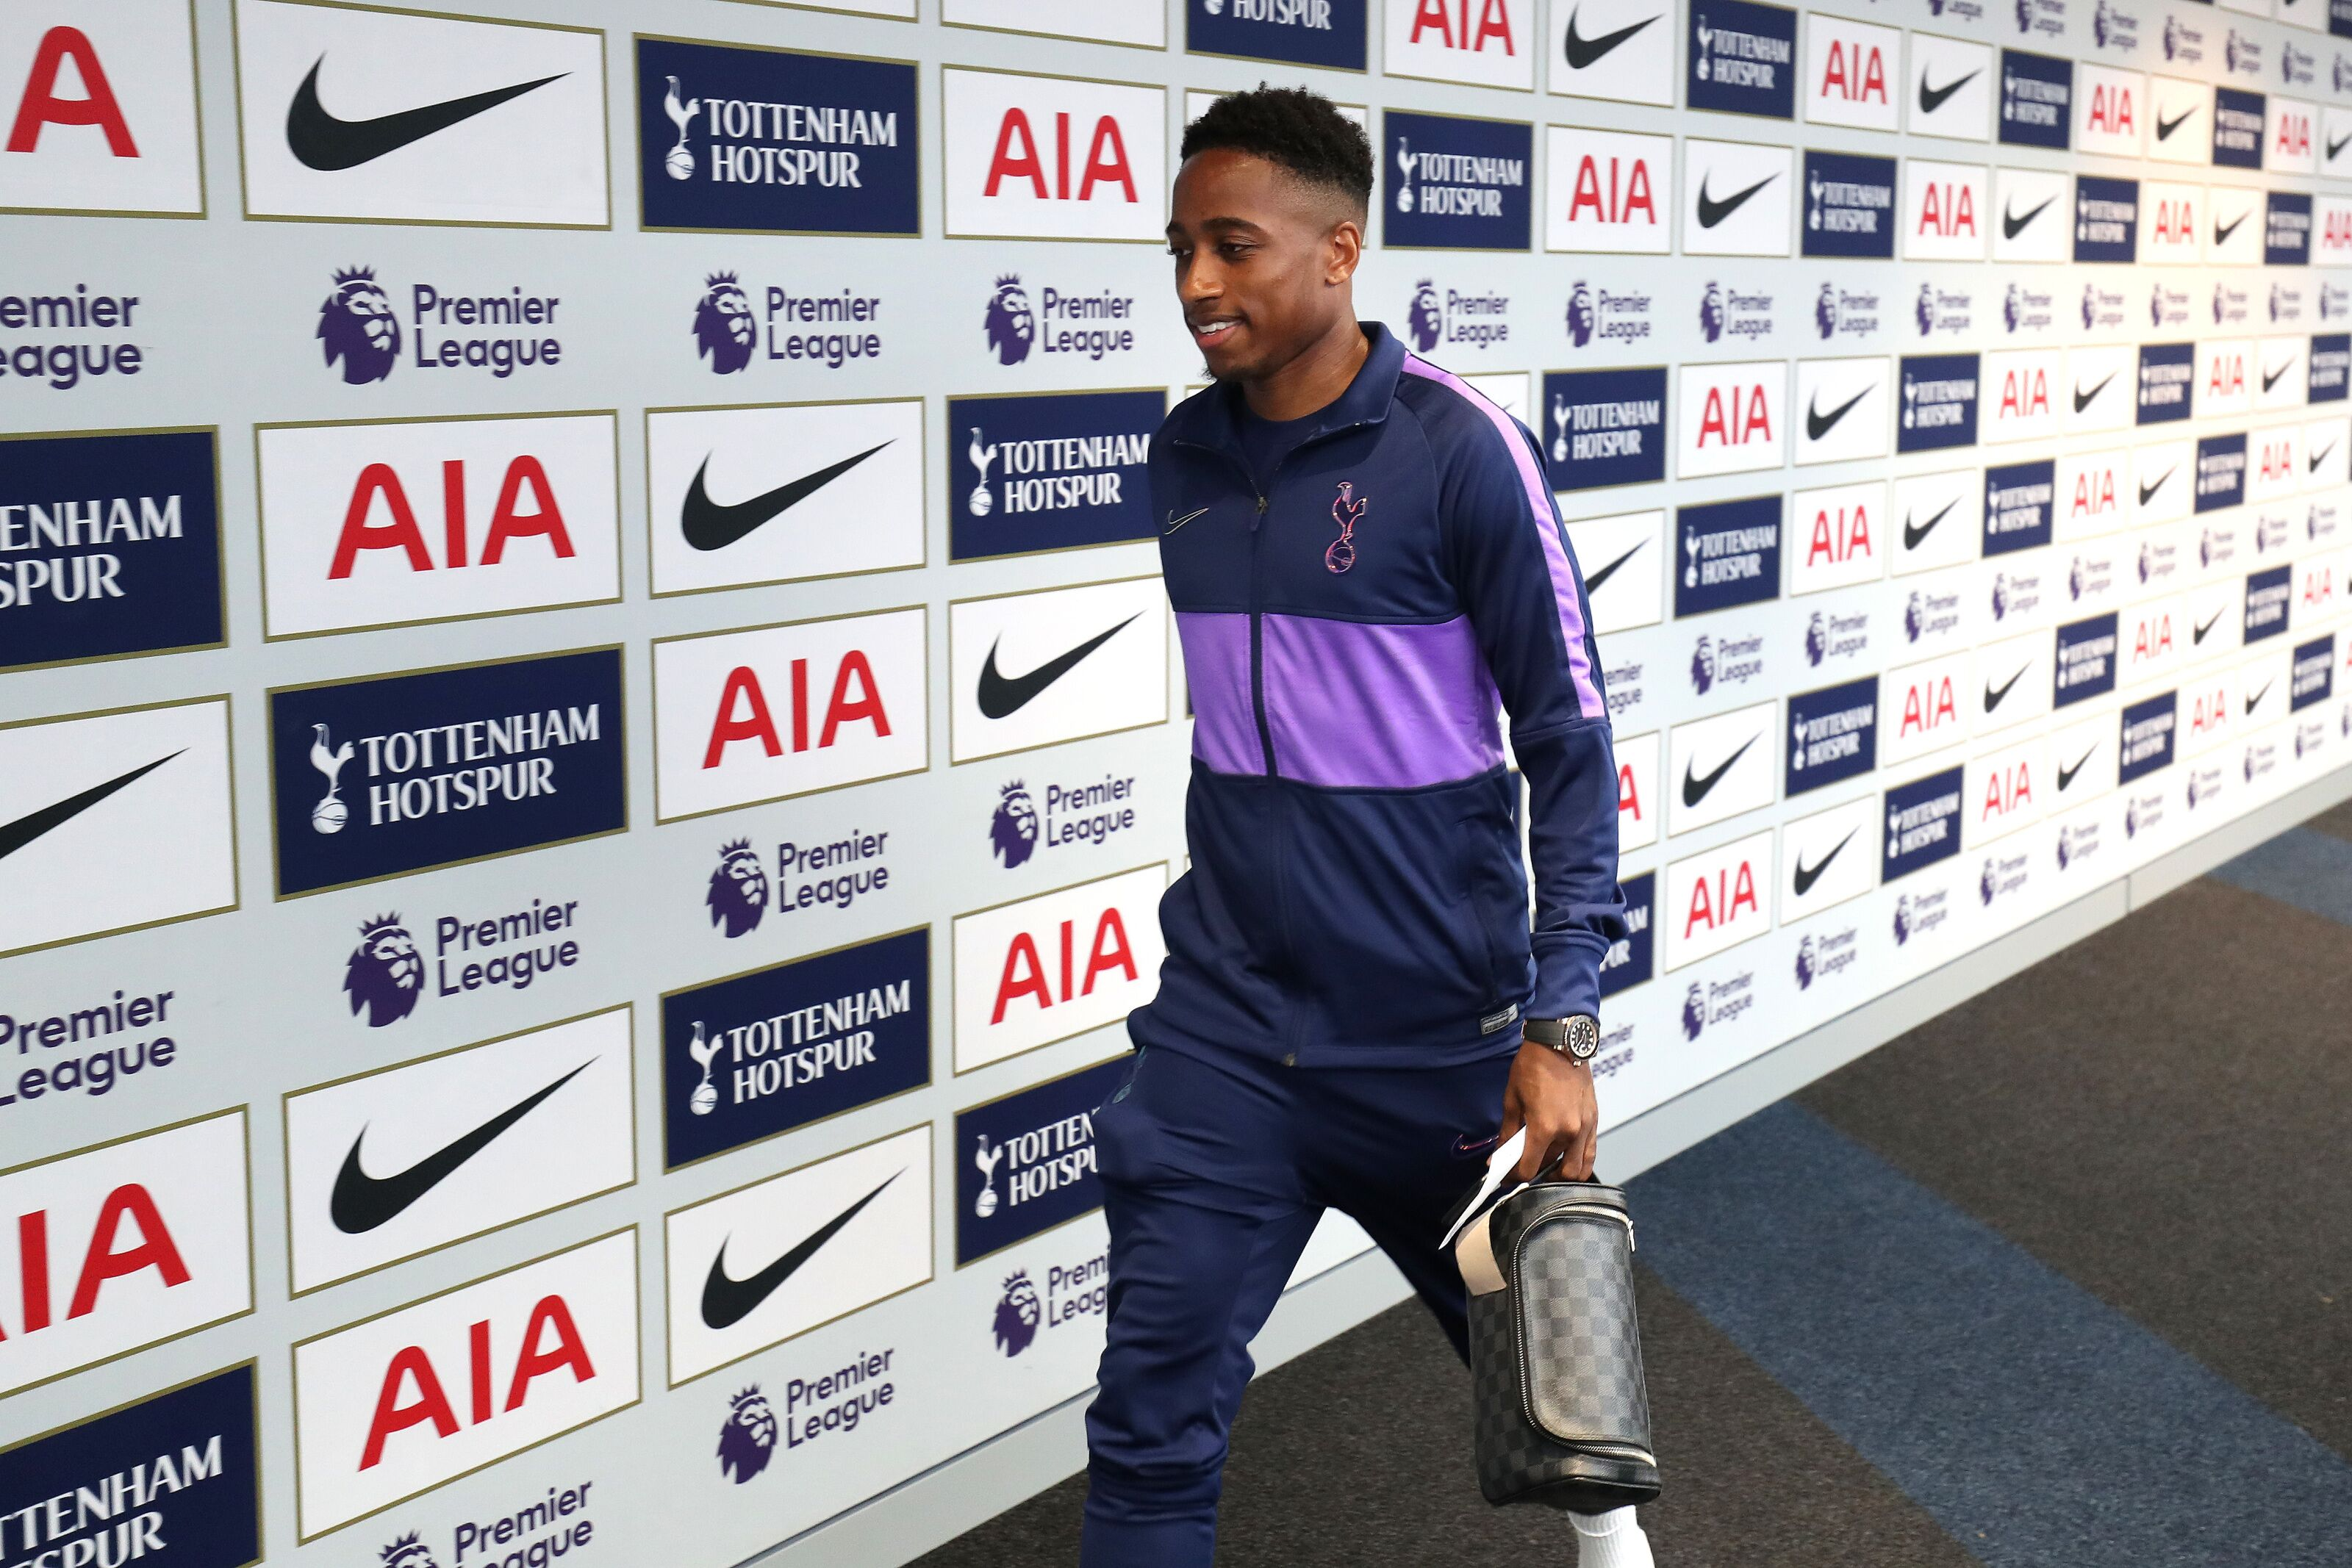 Kyle Walker-Peters can restore normalcy for Tottenham against Palace